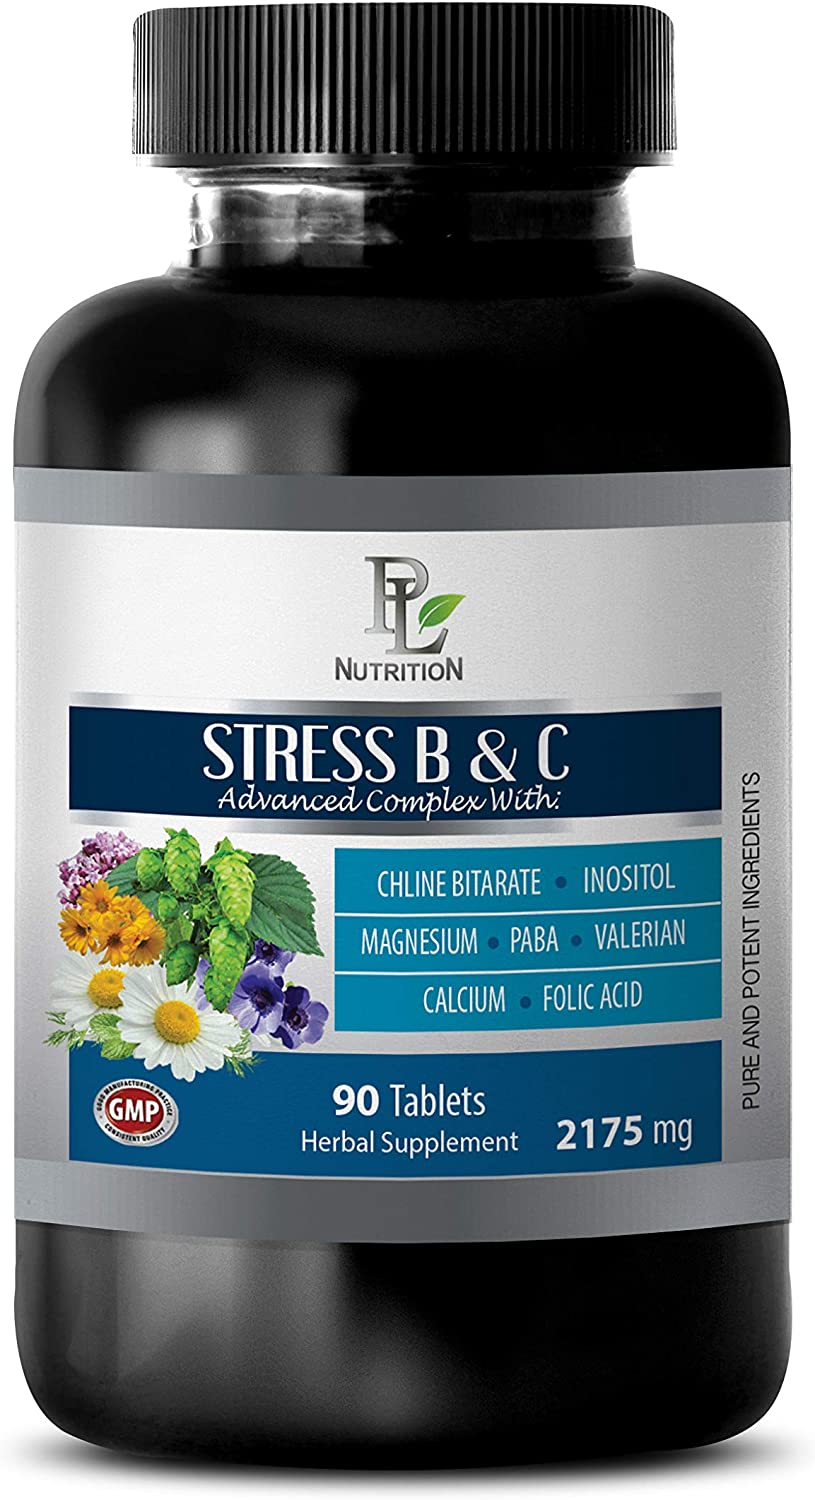 Depression Vitamins Women - Stress B & C Advanced Complex 2175 MG - Passion Flower Valerian Root - 1 Bottle 90 Coated Tables